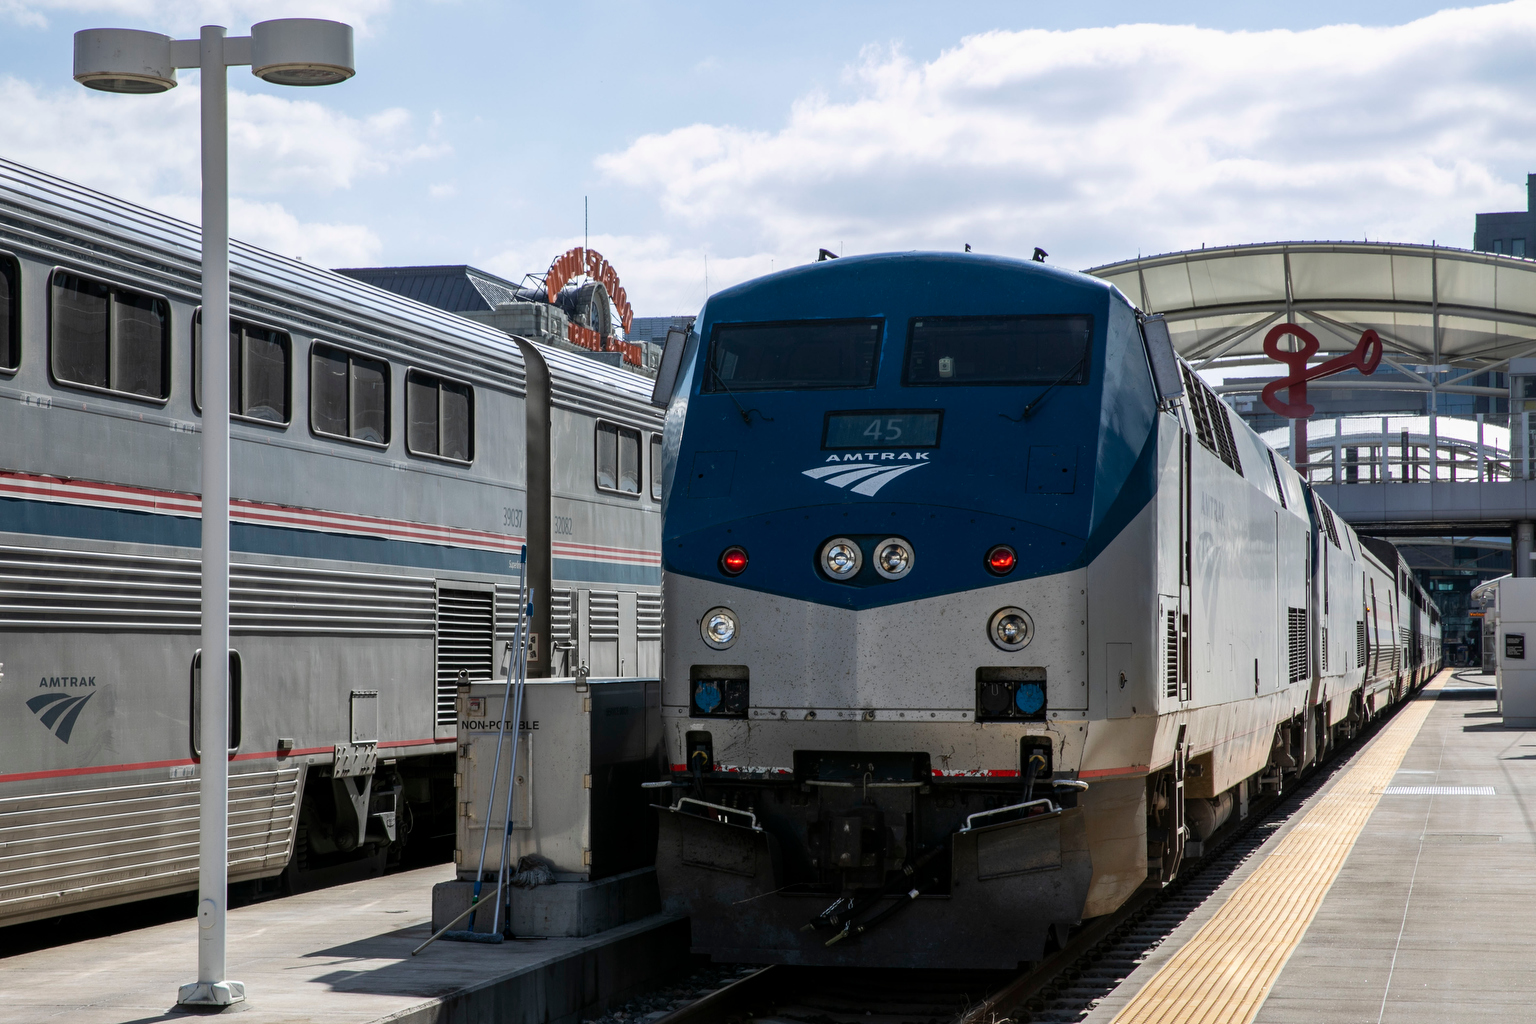 Amtrak trains at Union Staton in Denver.